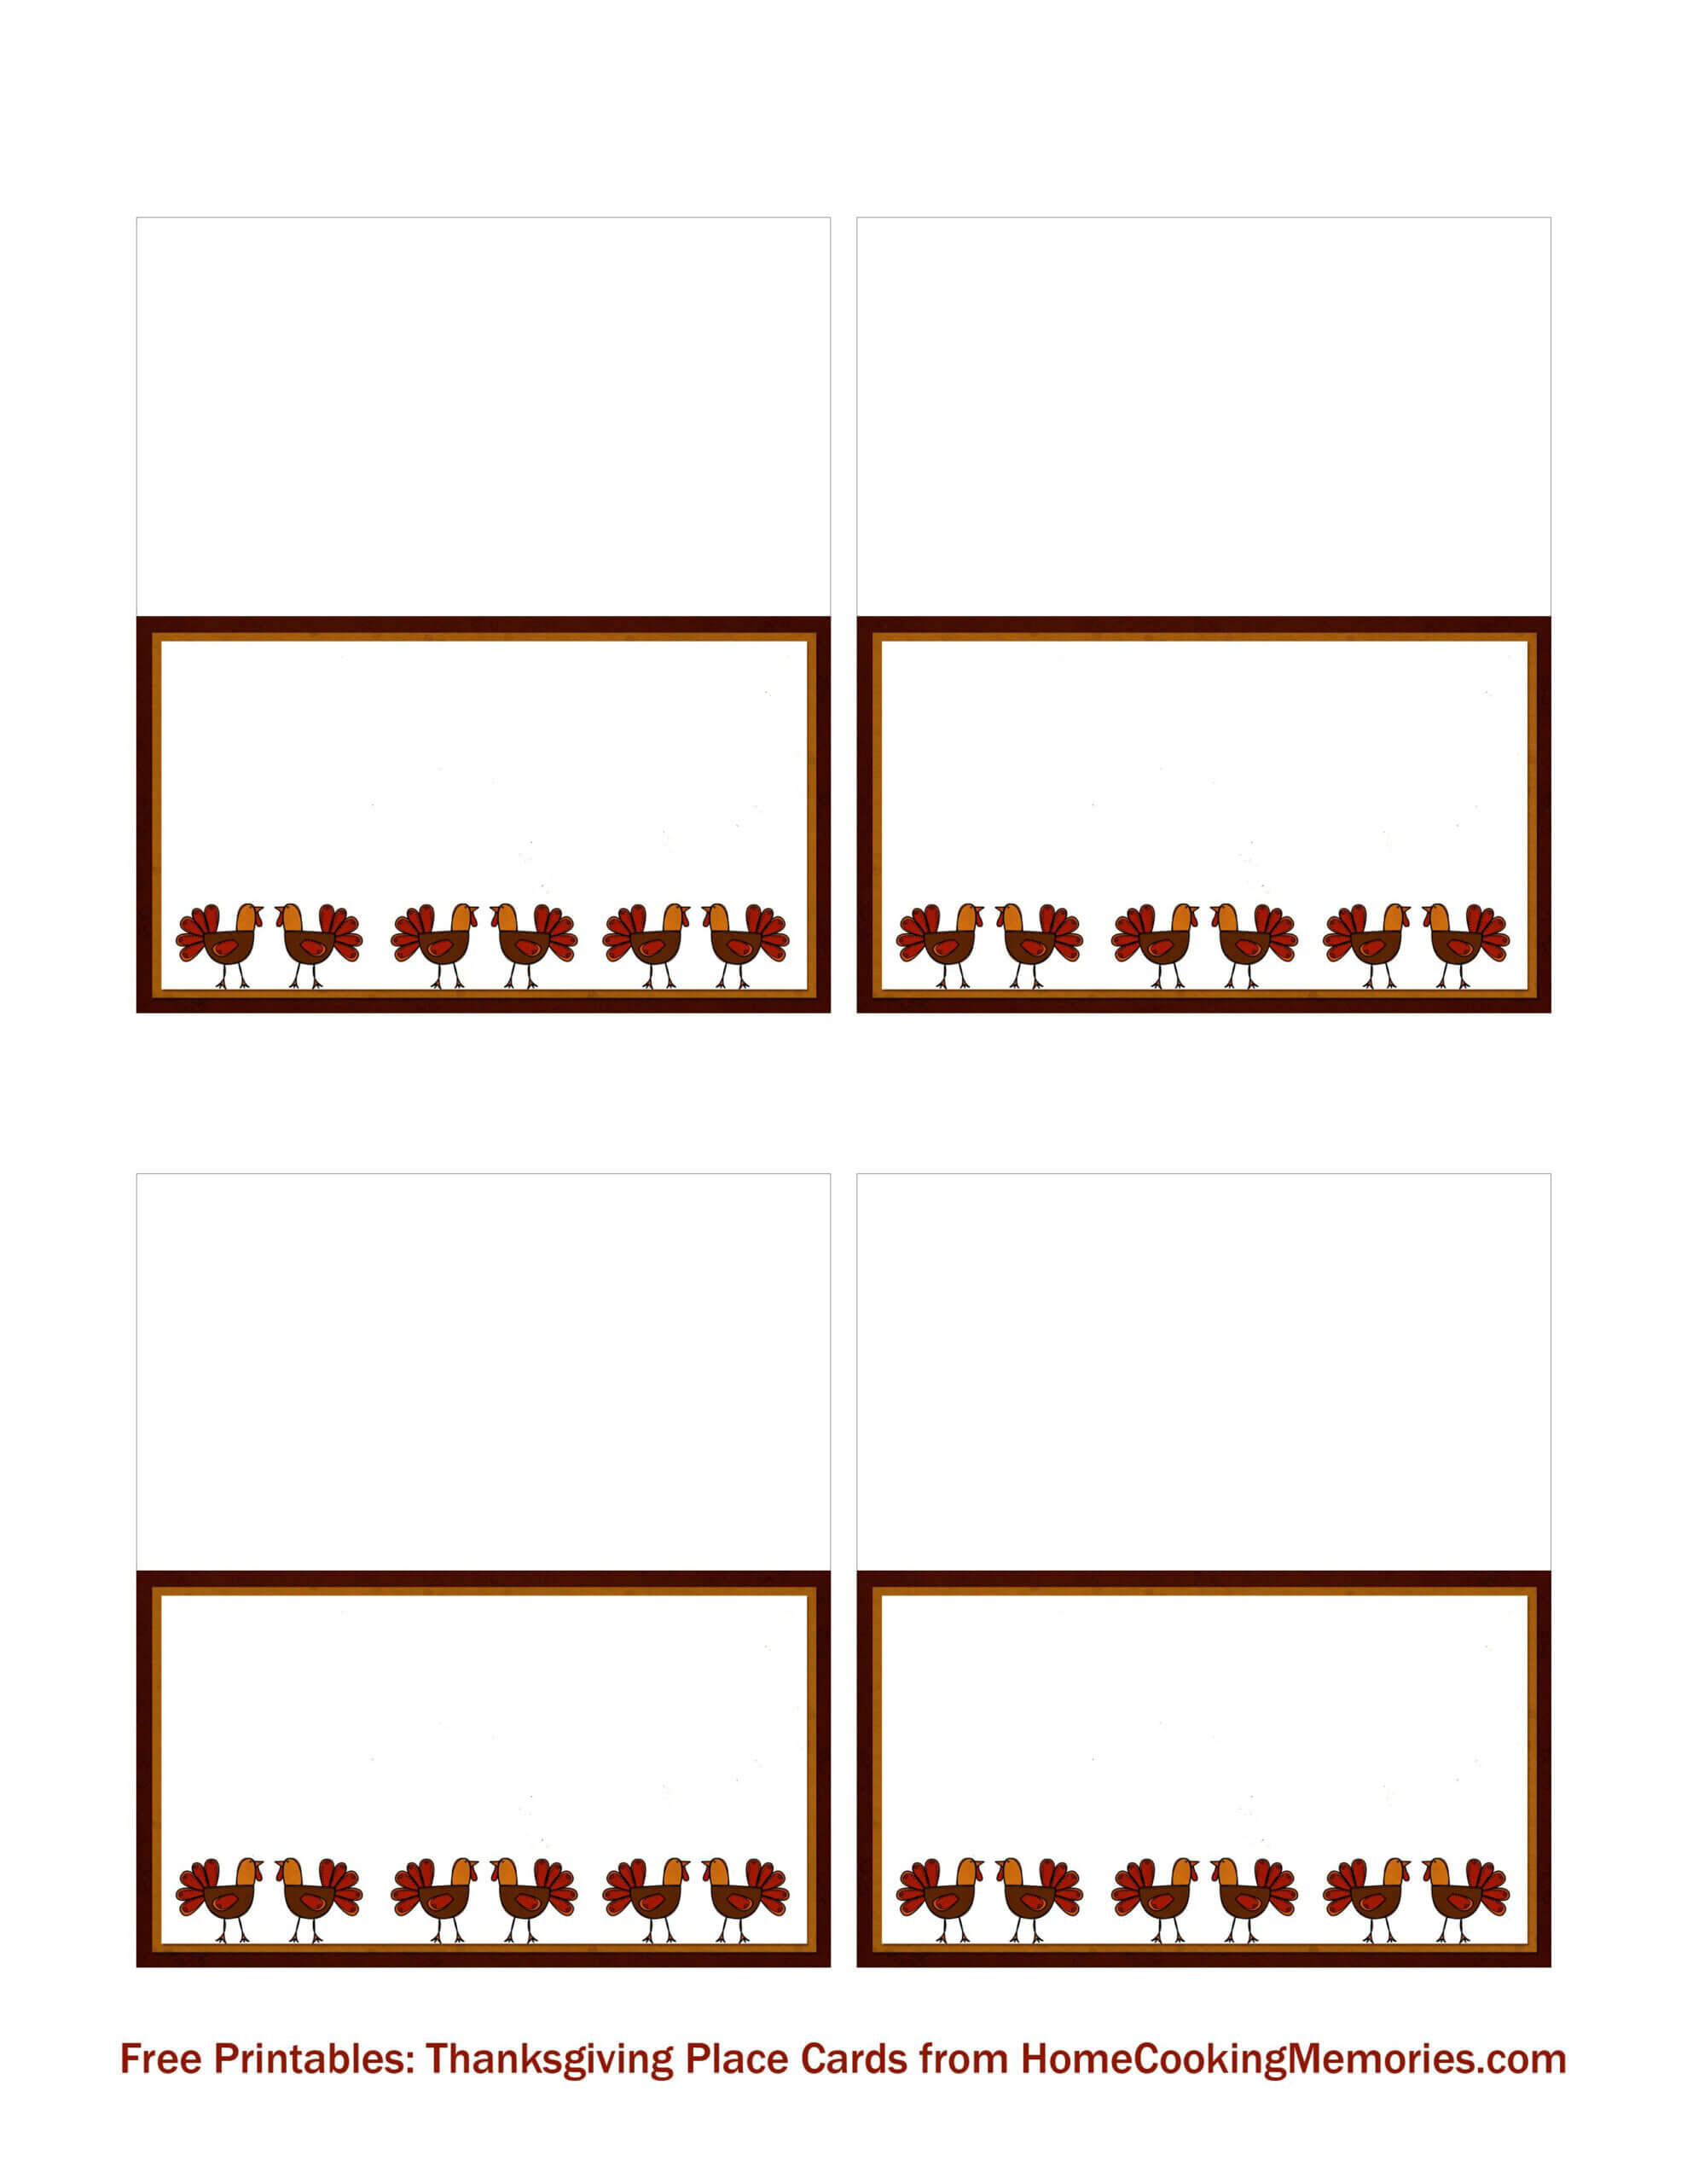 Free Printables: Thanksgiving Place Cards | Thanksgiving Within Thanksgiving Place Cards Template